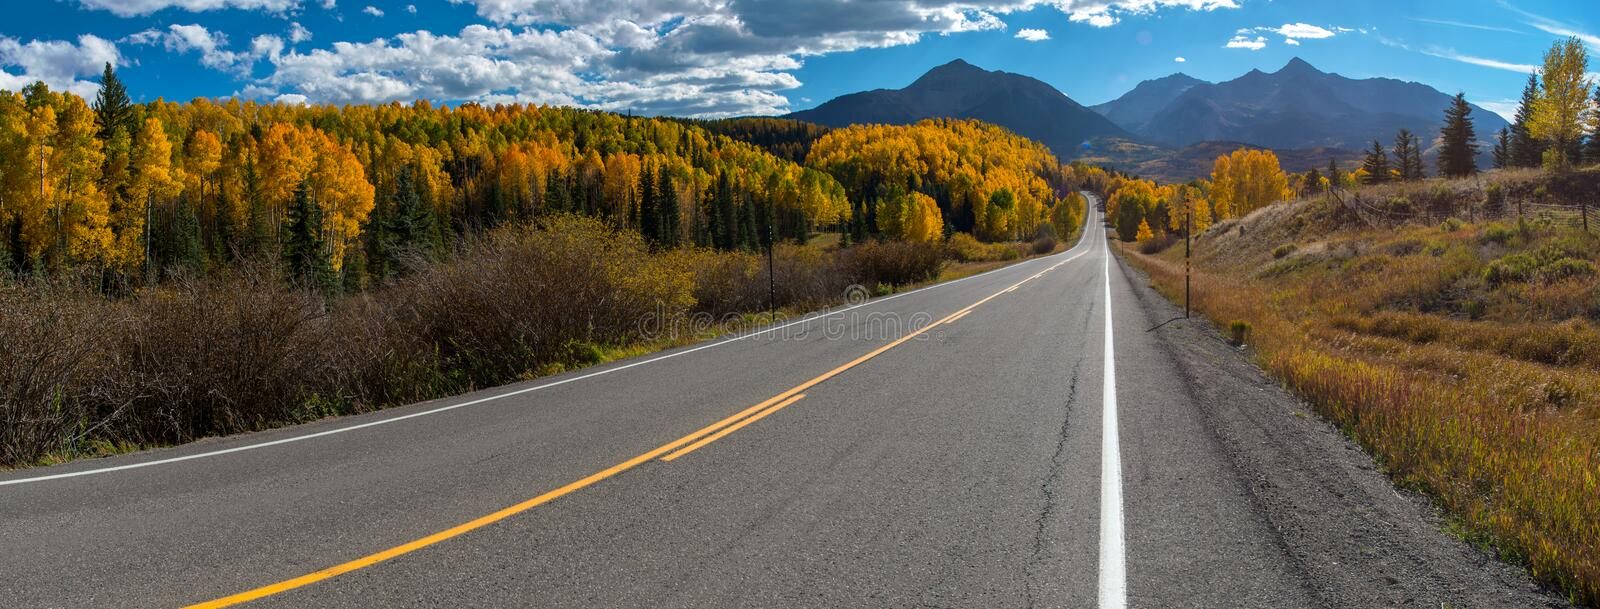 Fall color, Colorado Highway 145 Panorama royalty free stock photography